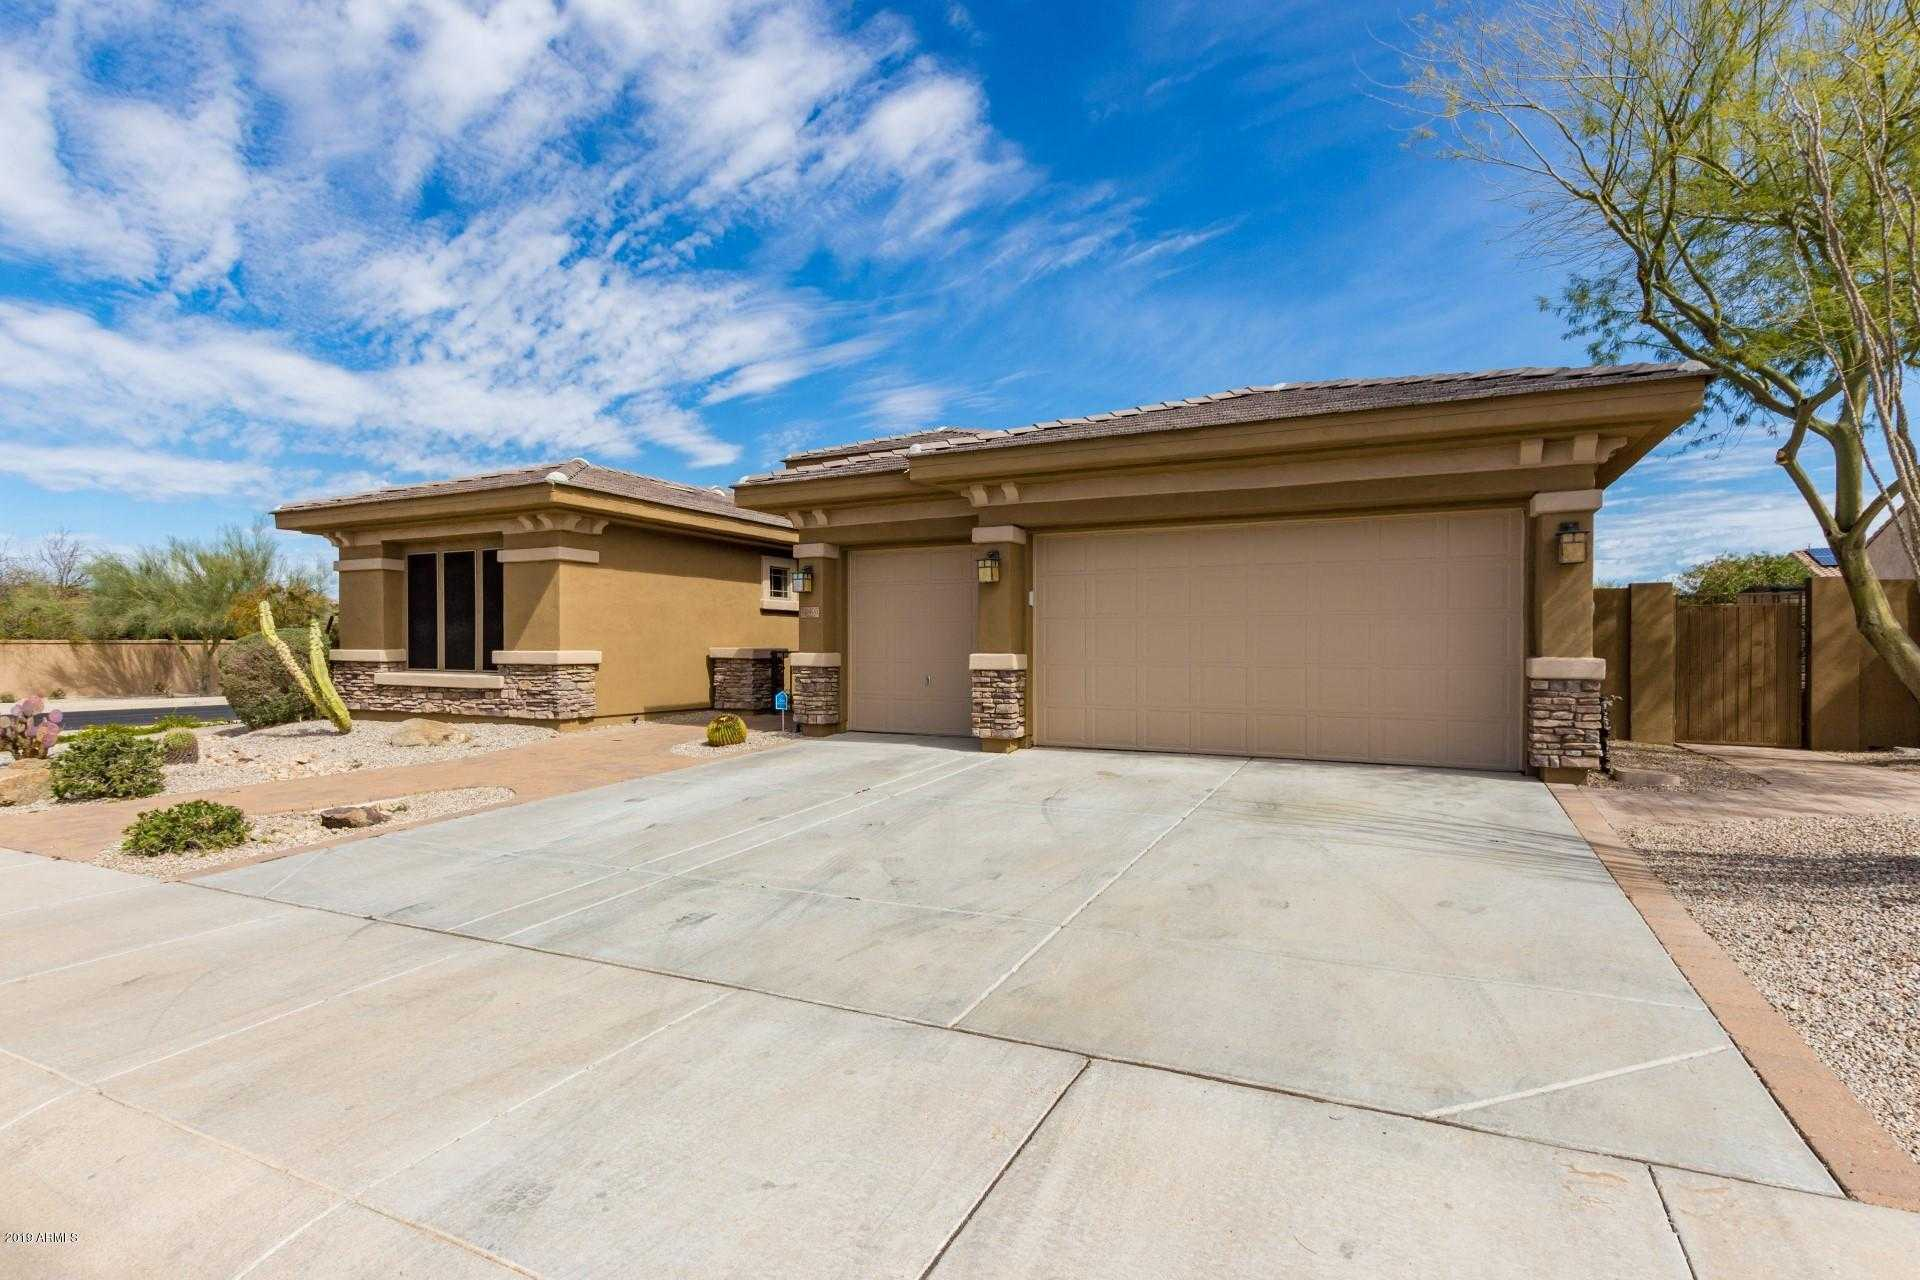 $449,000 - 4Br/3Ba - Home for Sale in Estrella Mountain Ranch Parcel 95b, Goodyear